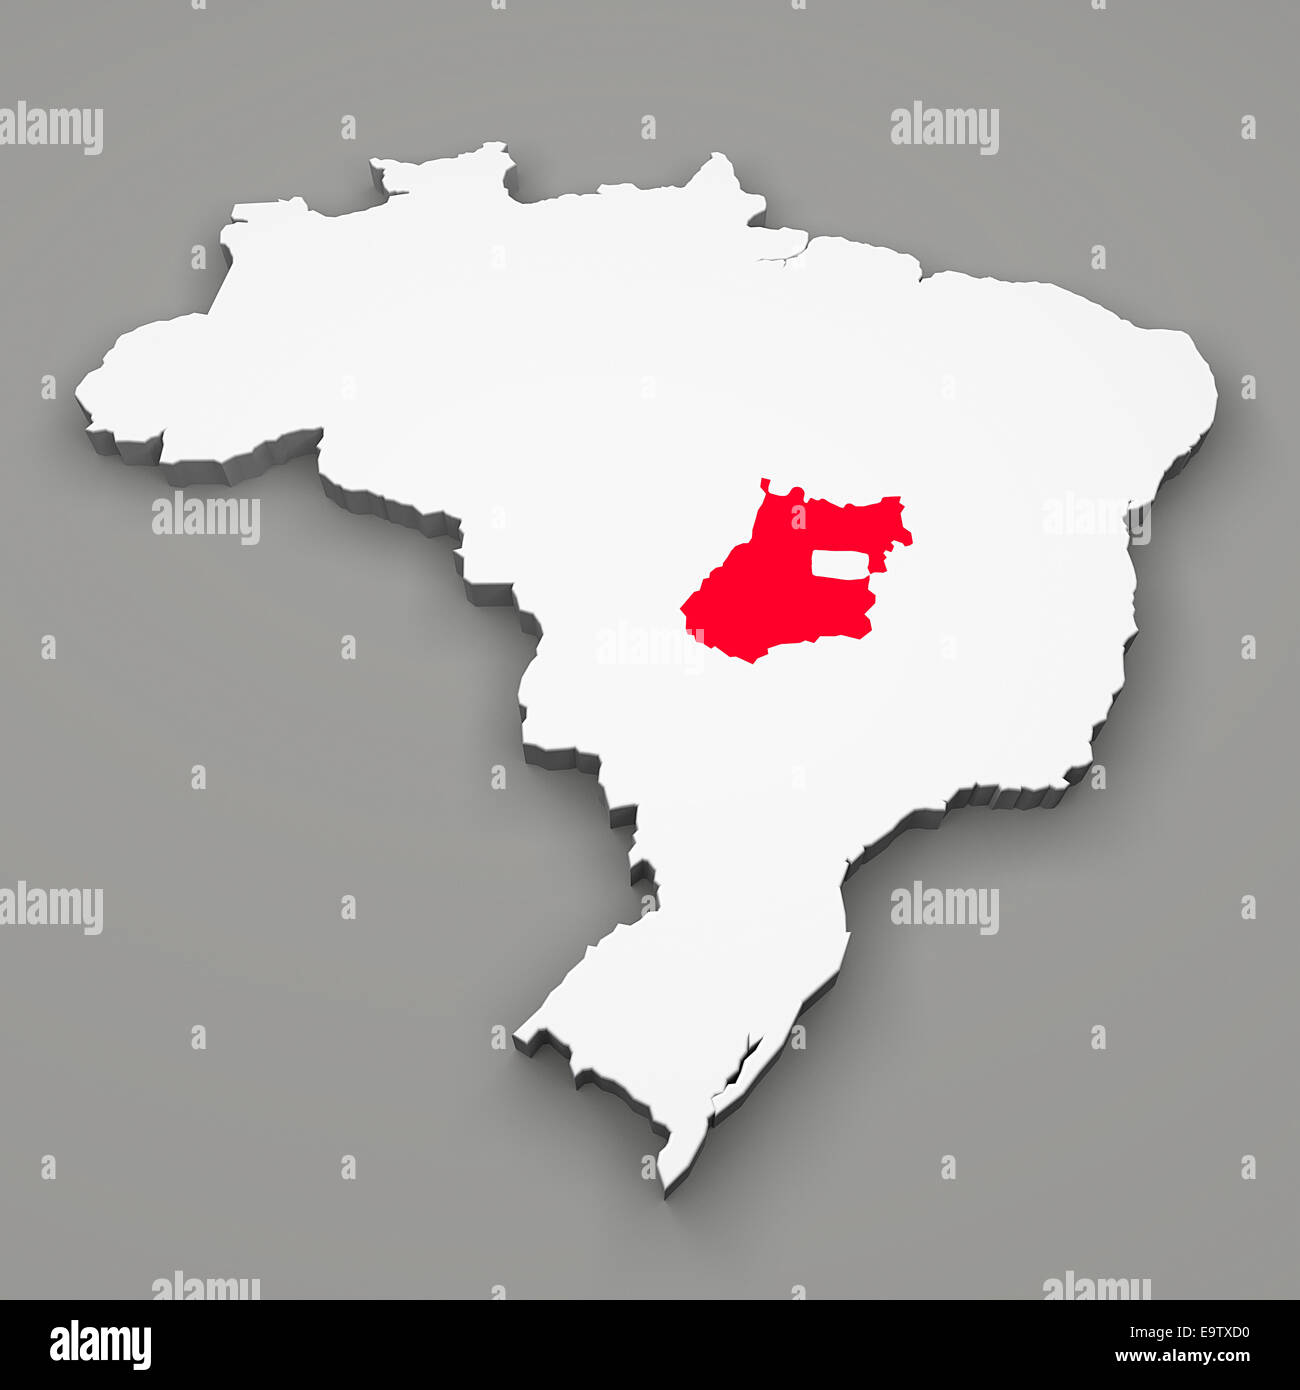 Goias state on map of Brazil on gray background - Stock Image